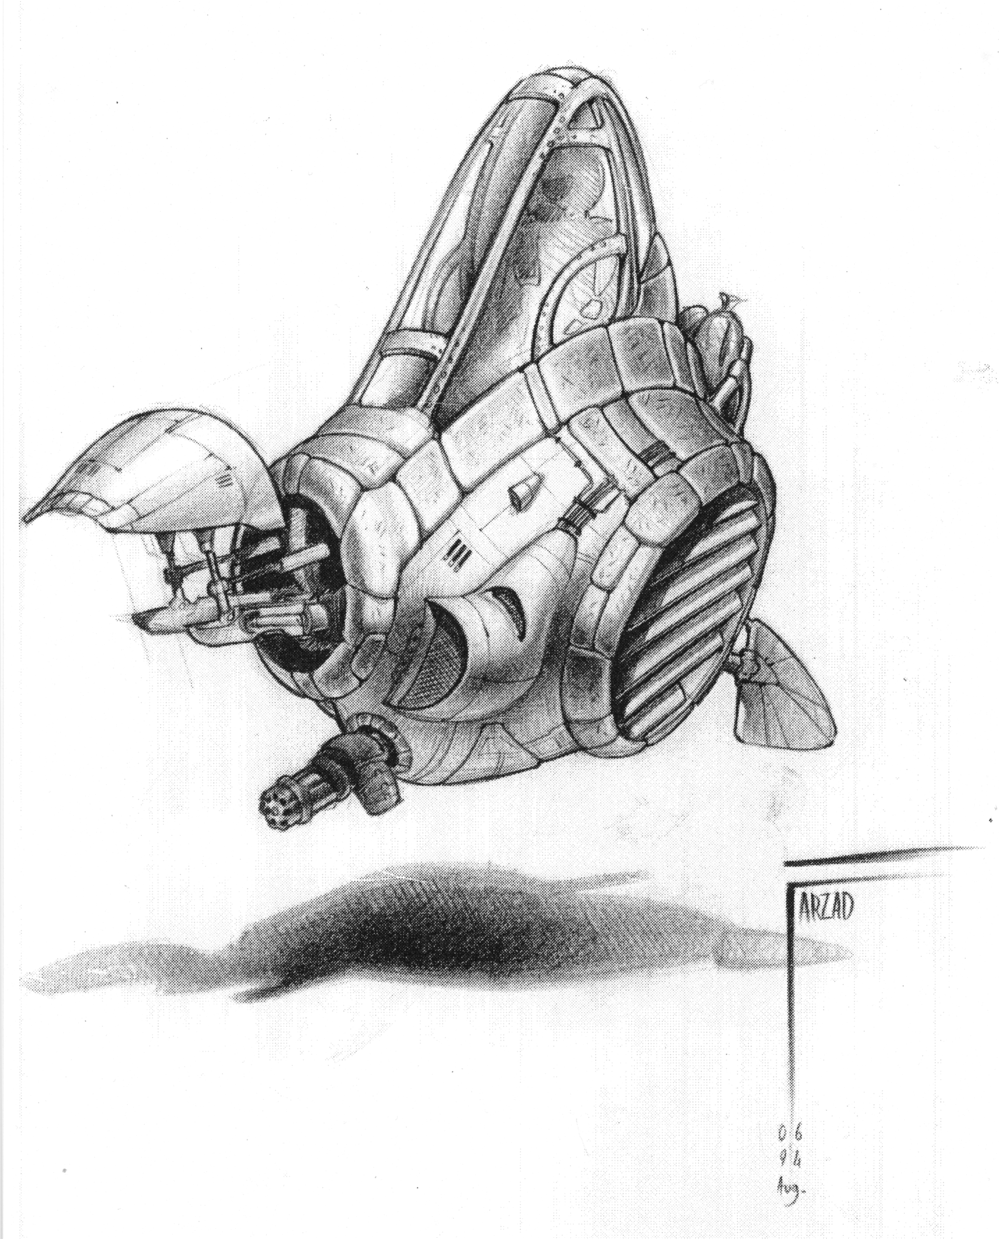 persopolis_vehicle_prop00005.png